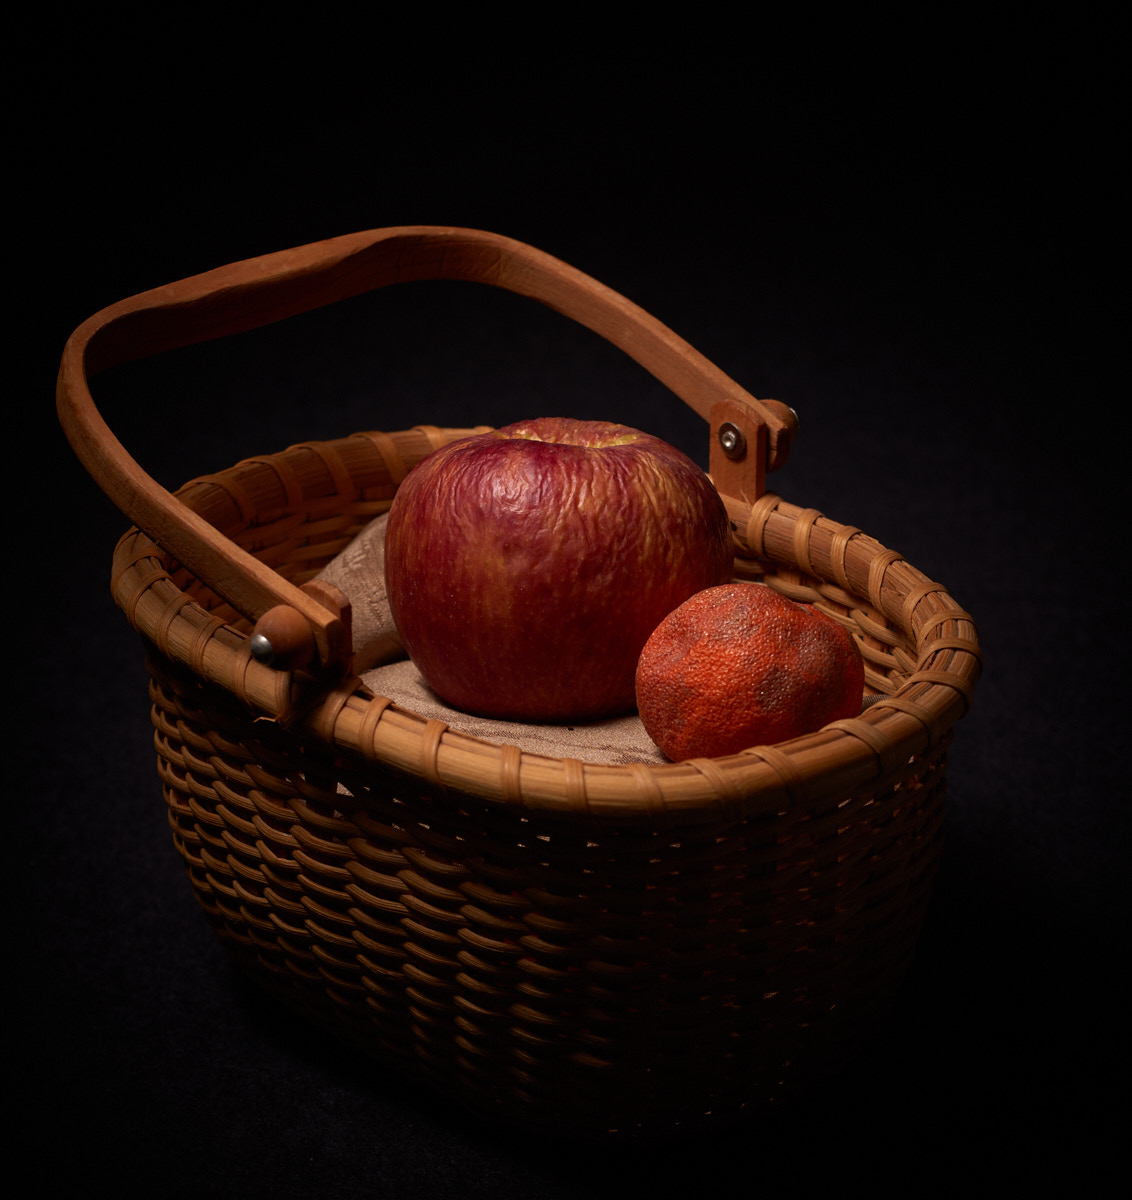 Old Fruit - M10 version by Bob in Bob Freund